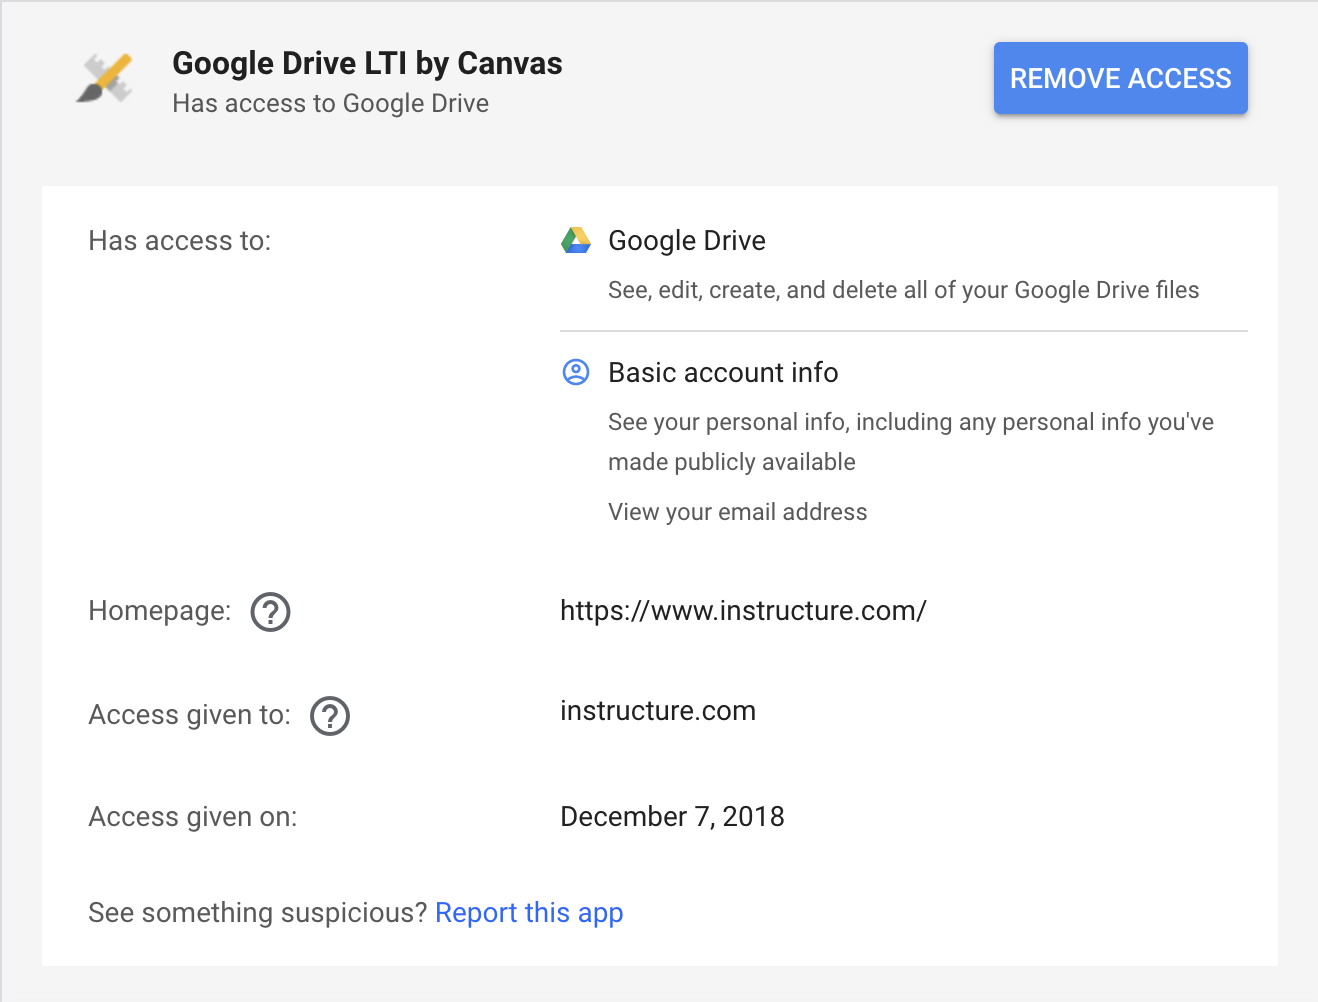 Google Drive LTI by Canvas with blue remove access button